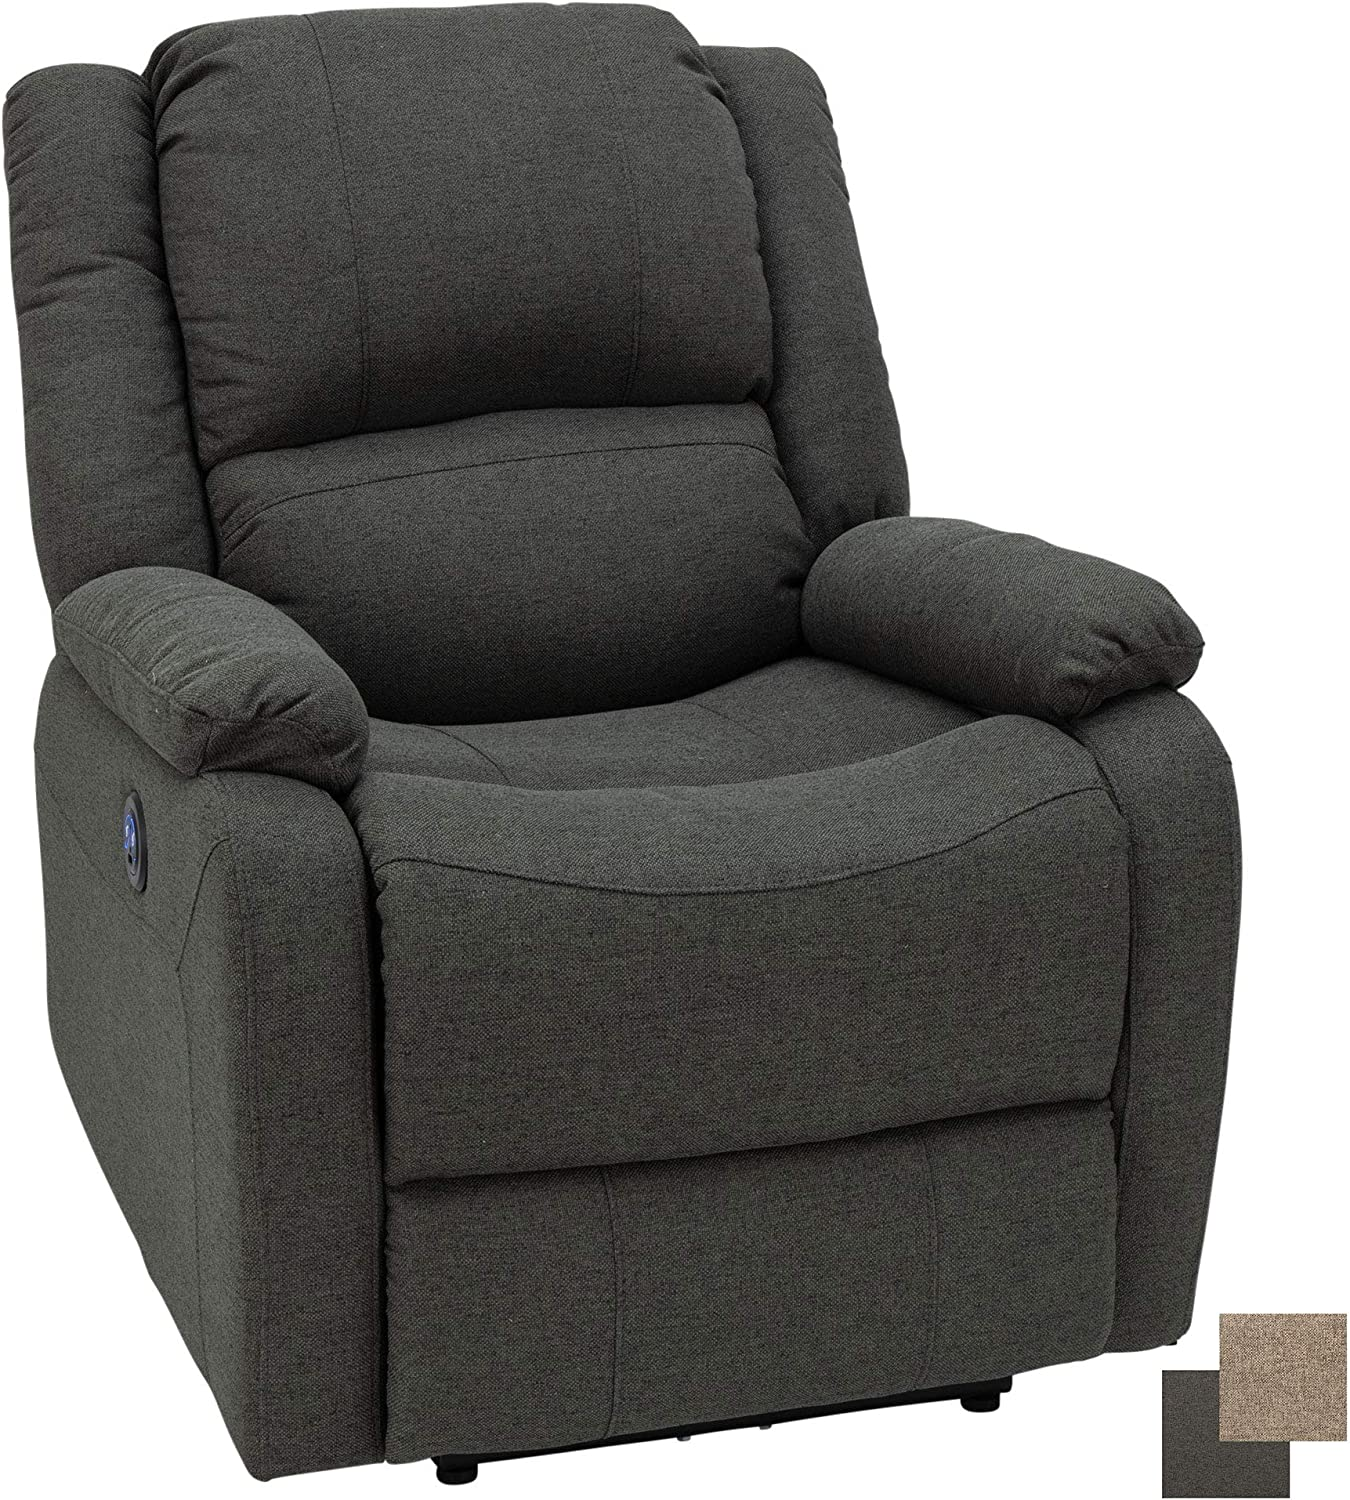 """RecPro Charles 30"""" Powered RV Wall Hugger Recliner in Cloth   Zero Wall Powered Reclining Chair   RV Furniture   Camper Furniture   RV Recliner (1 Pack, Fossil)"""